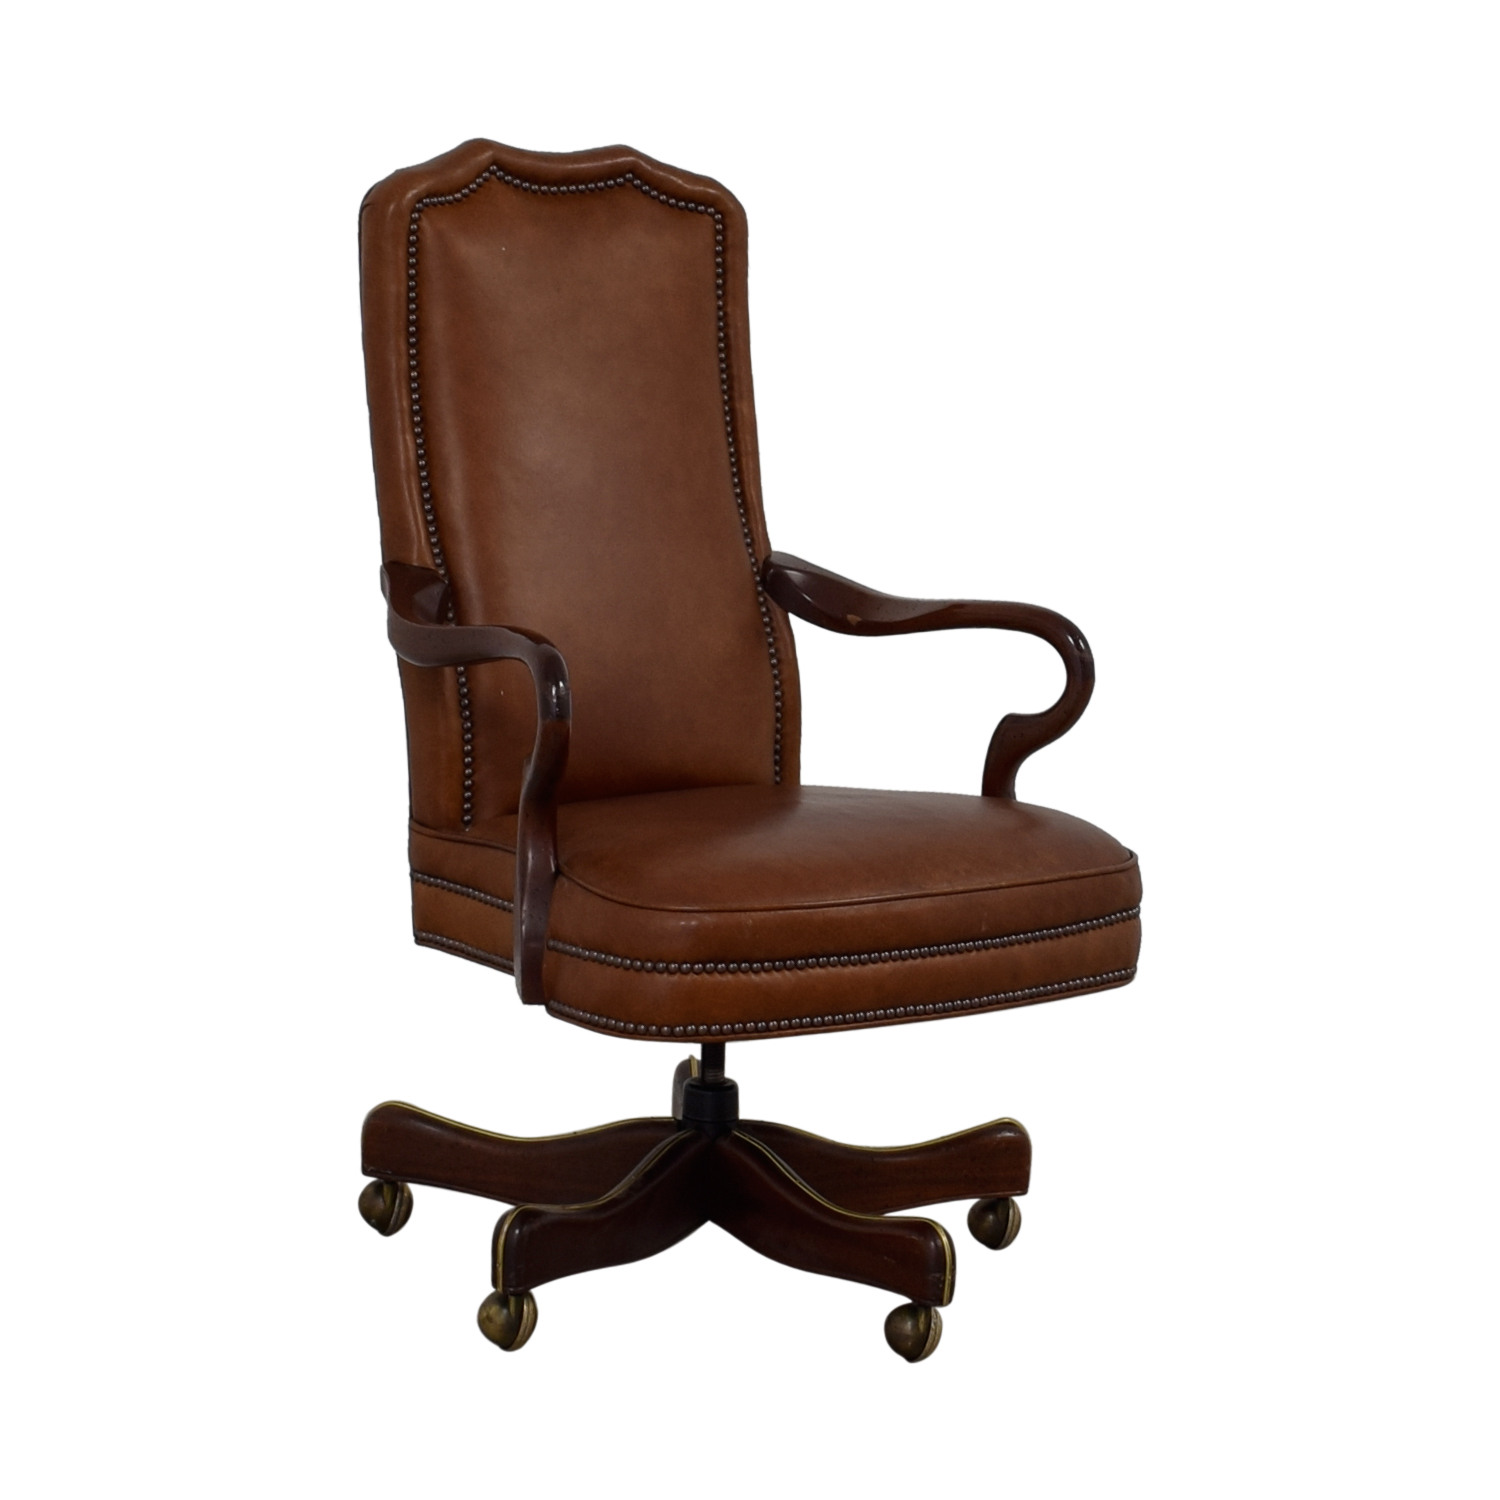 Charles Company Brown Leather Desk Chair Used